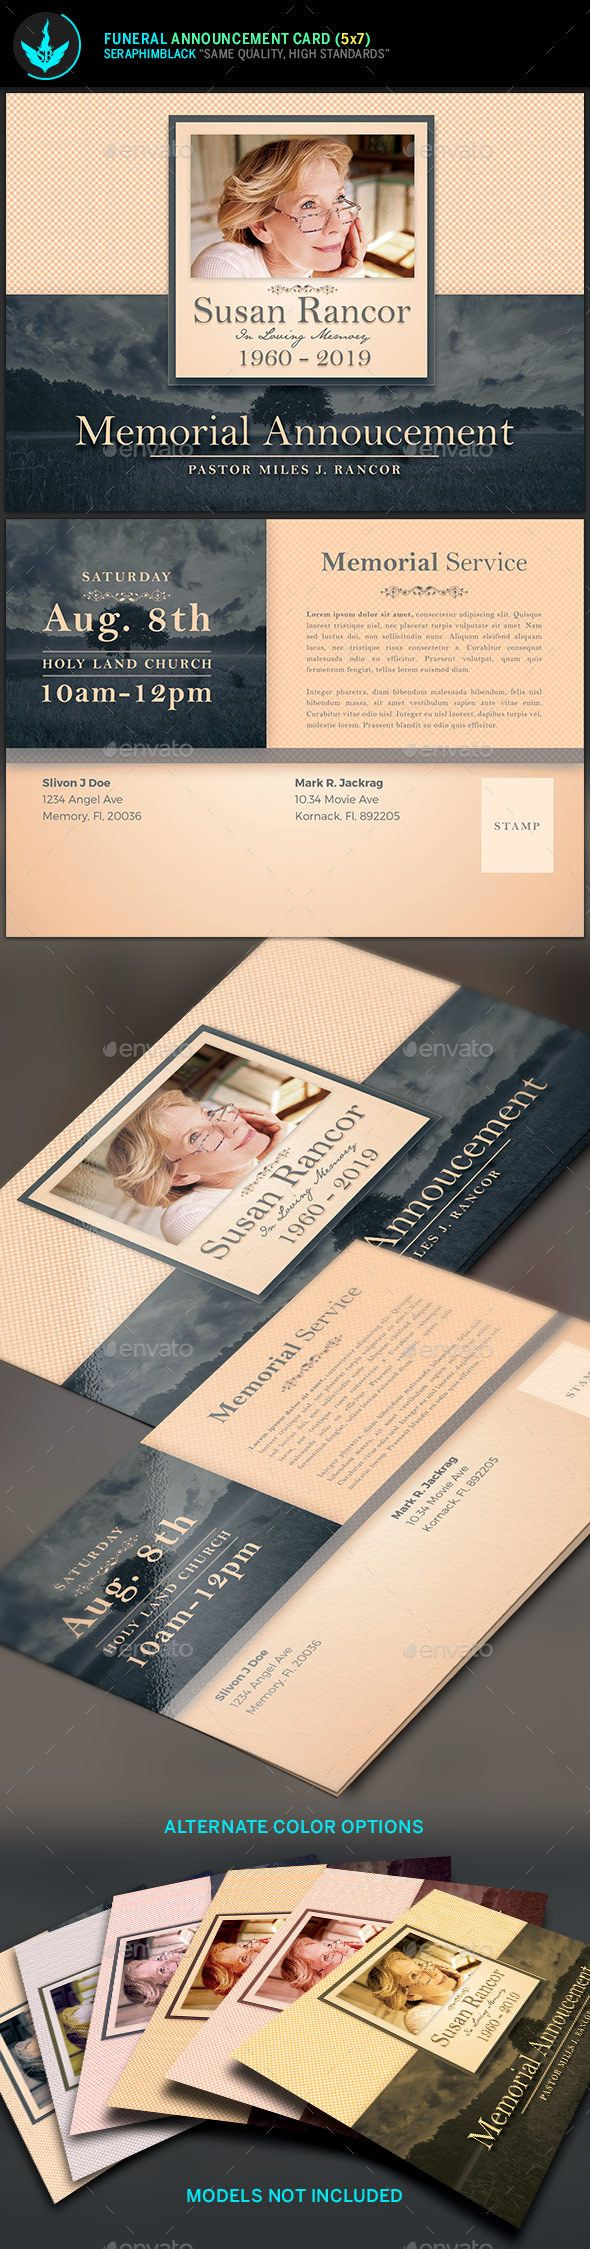 Classic Funeral Announcement Card Template Need a unique funeral program design with a vintage look for the deceased? Look no further, this file is easy to use and will give you a wonderful, clean presentation. Customize this flexible file in multiple ways to honor your loved one.